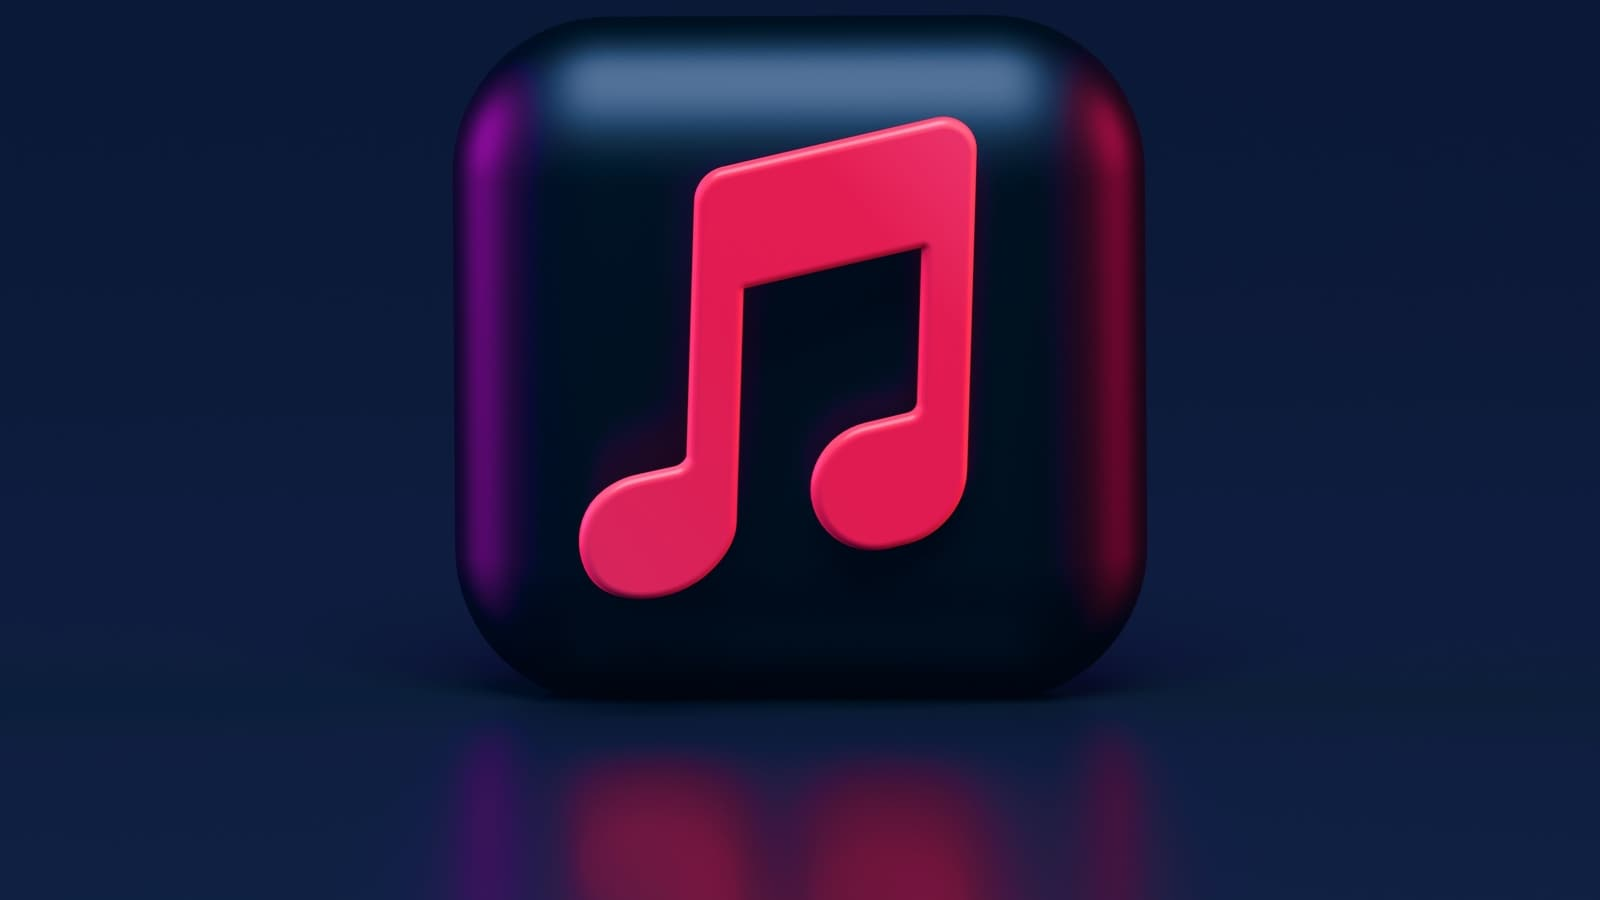 Apple Music pays artists an average of $ 0.01 per broadcast